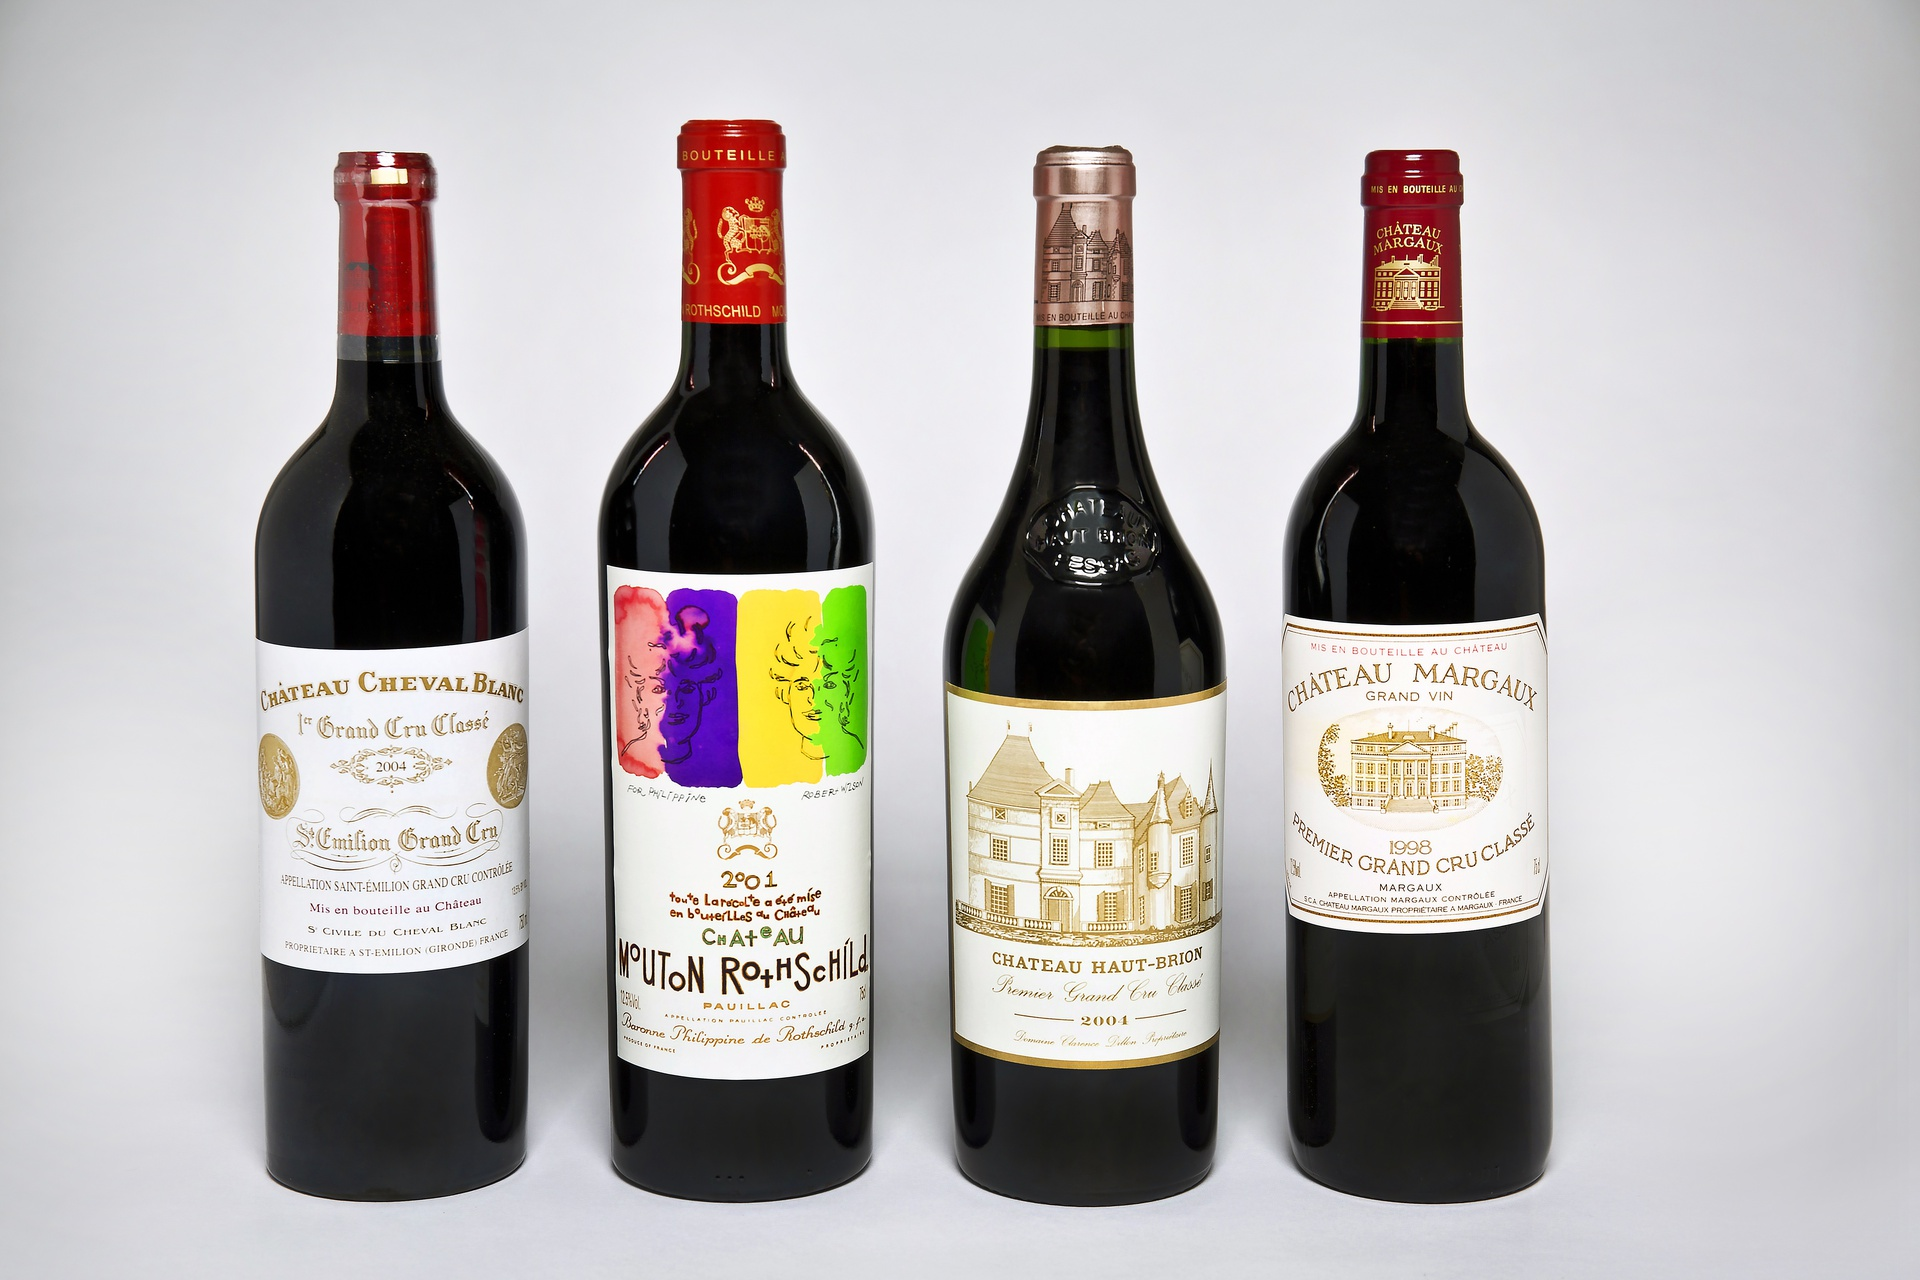 The Emirates Vintage Collection includes Château Cheval Blanc 2004, Château Haut Brion 2004, Château Mouton Rothschild 2001 and Château Margaux 1998